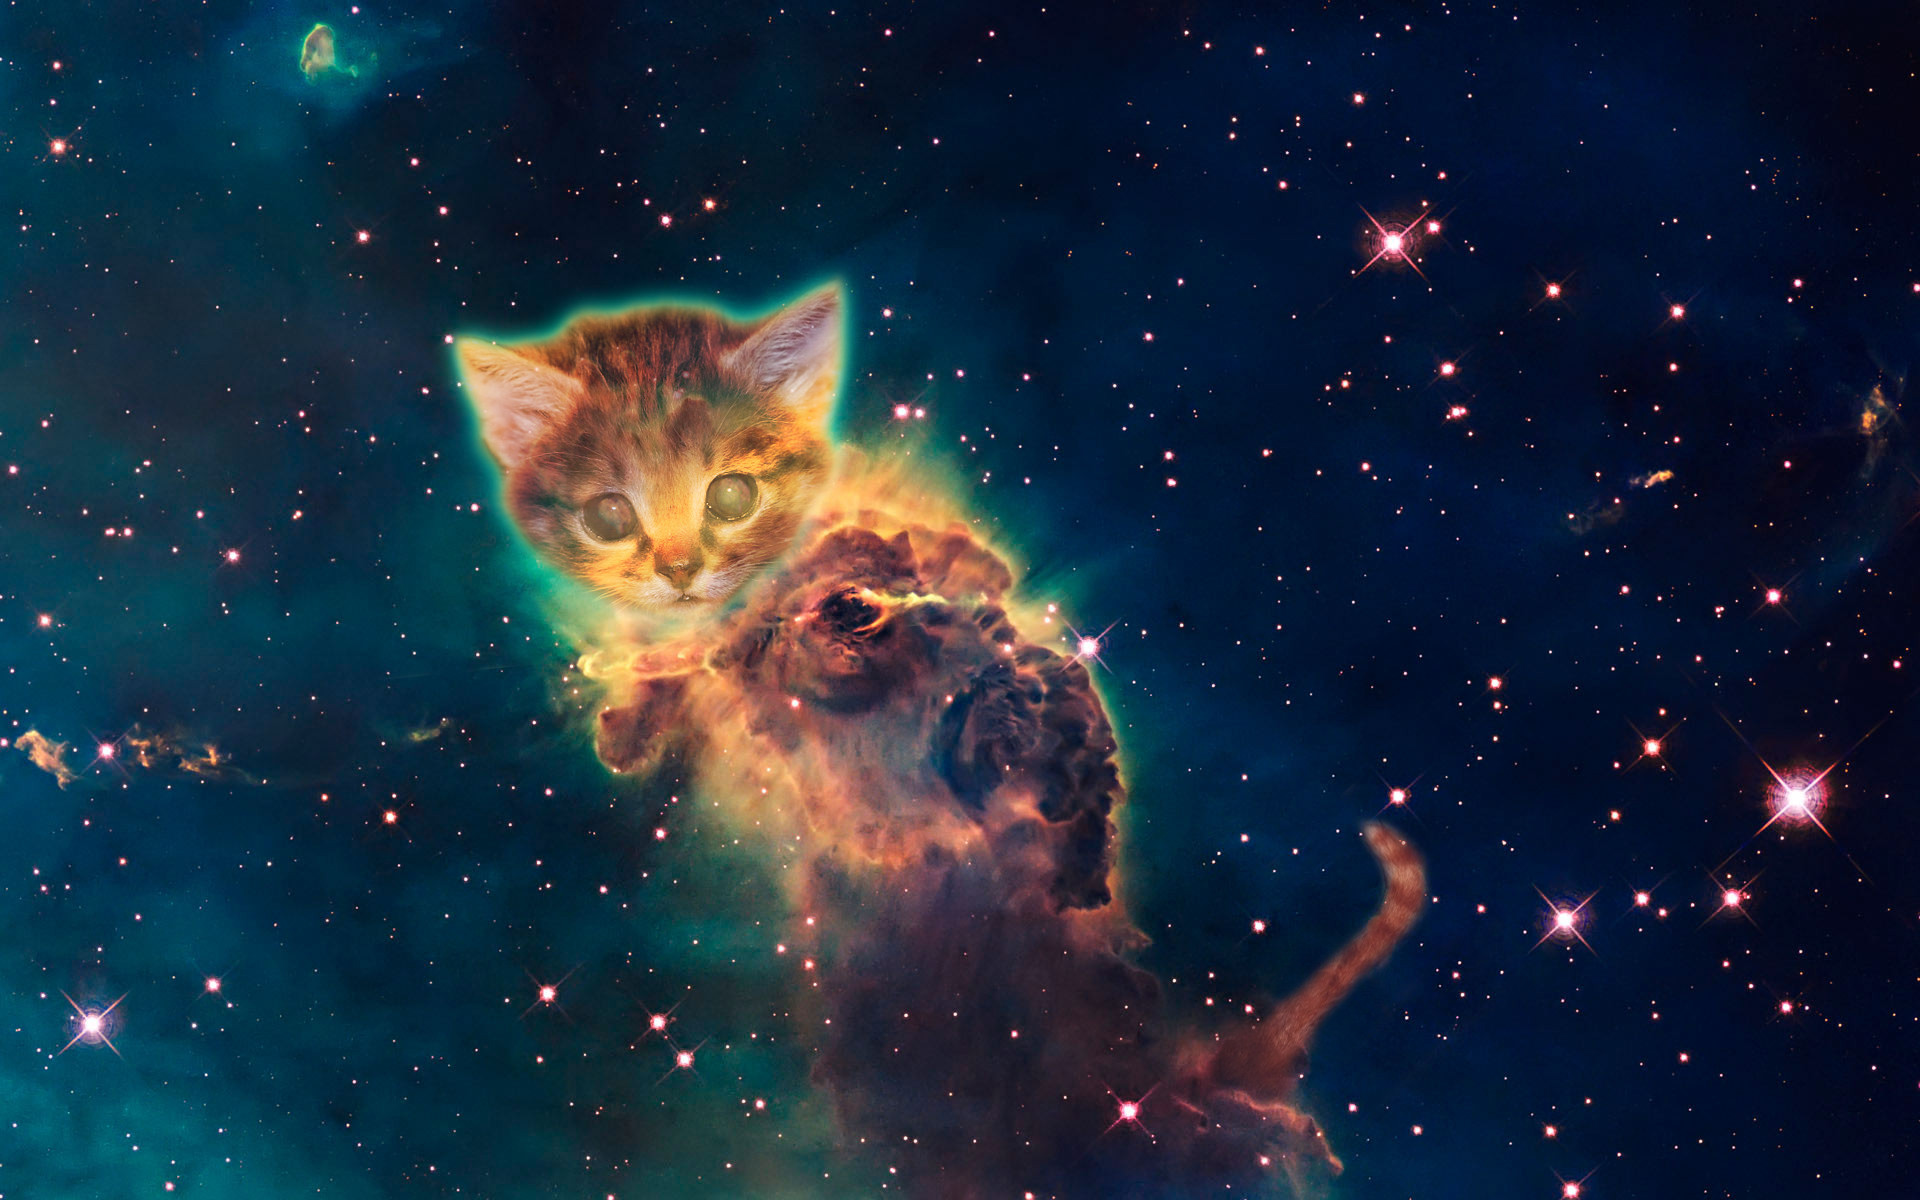 Galaxy Cat Wallpaper 69 images 1920x1200